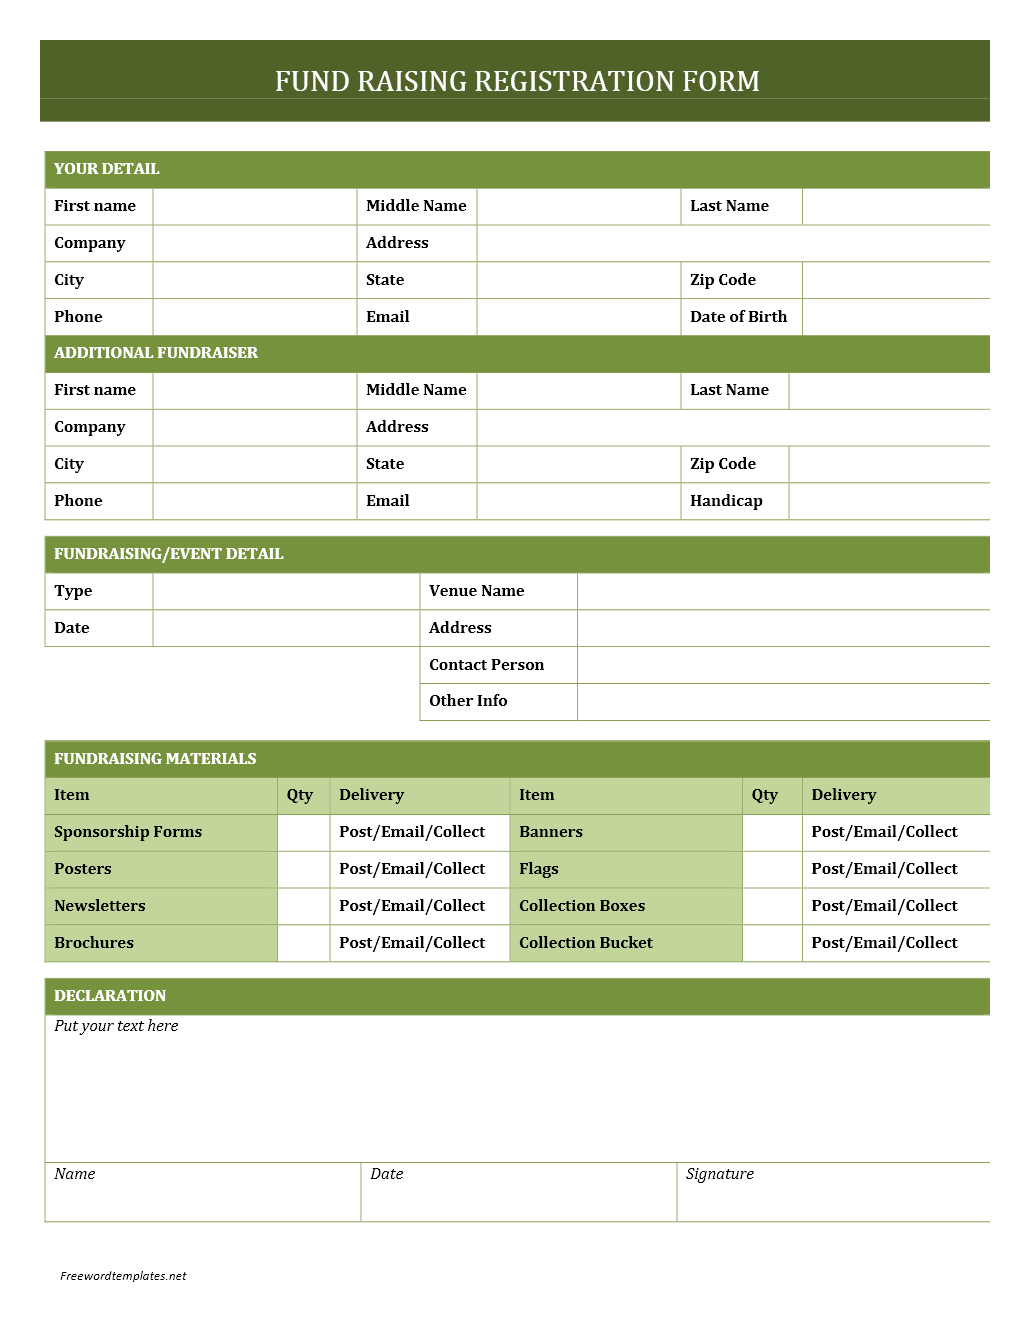 Fundraising Registration Form Template  New Customer Registration Form Template